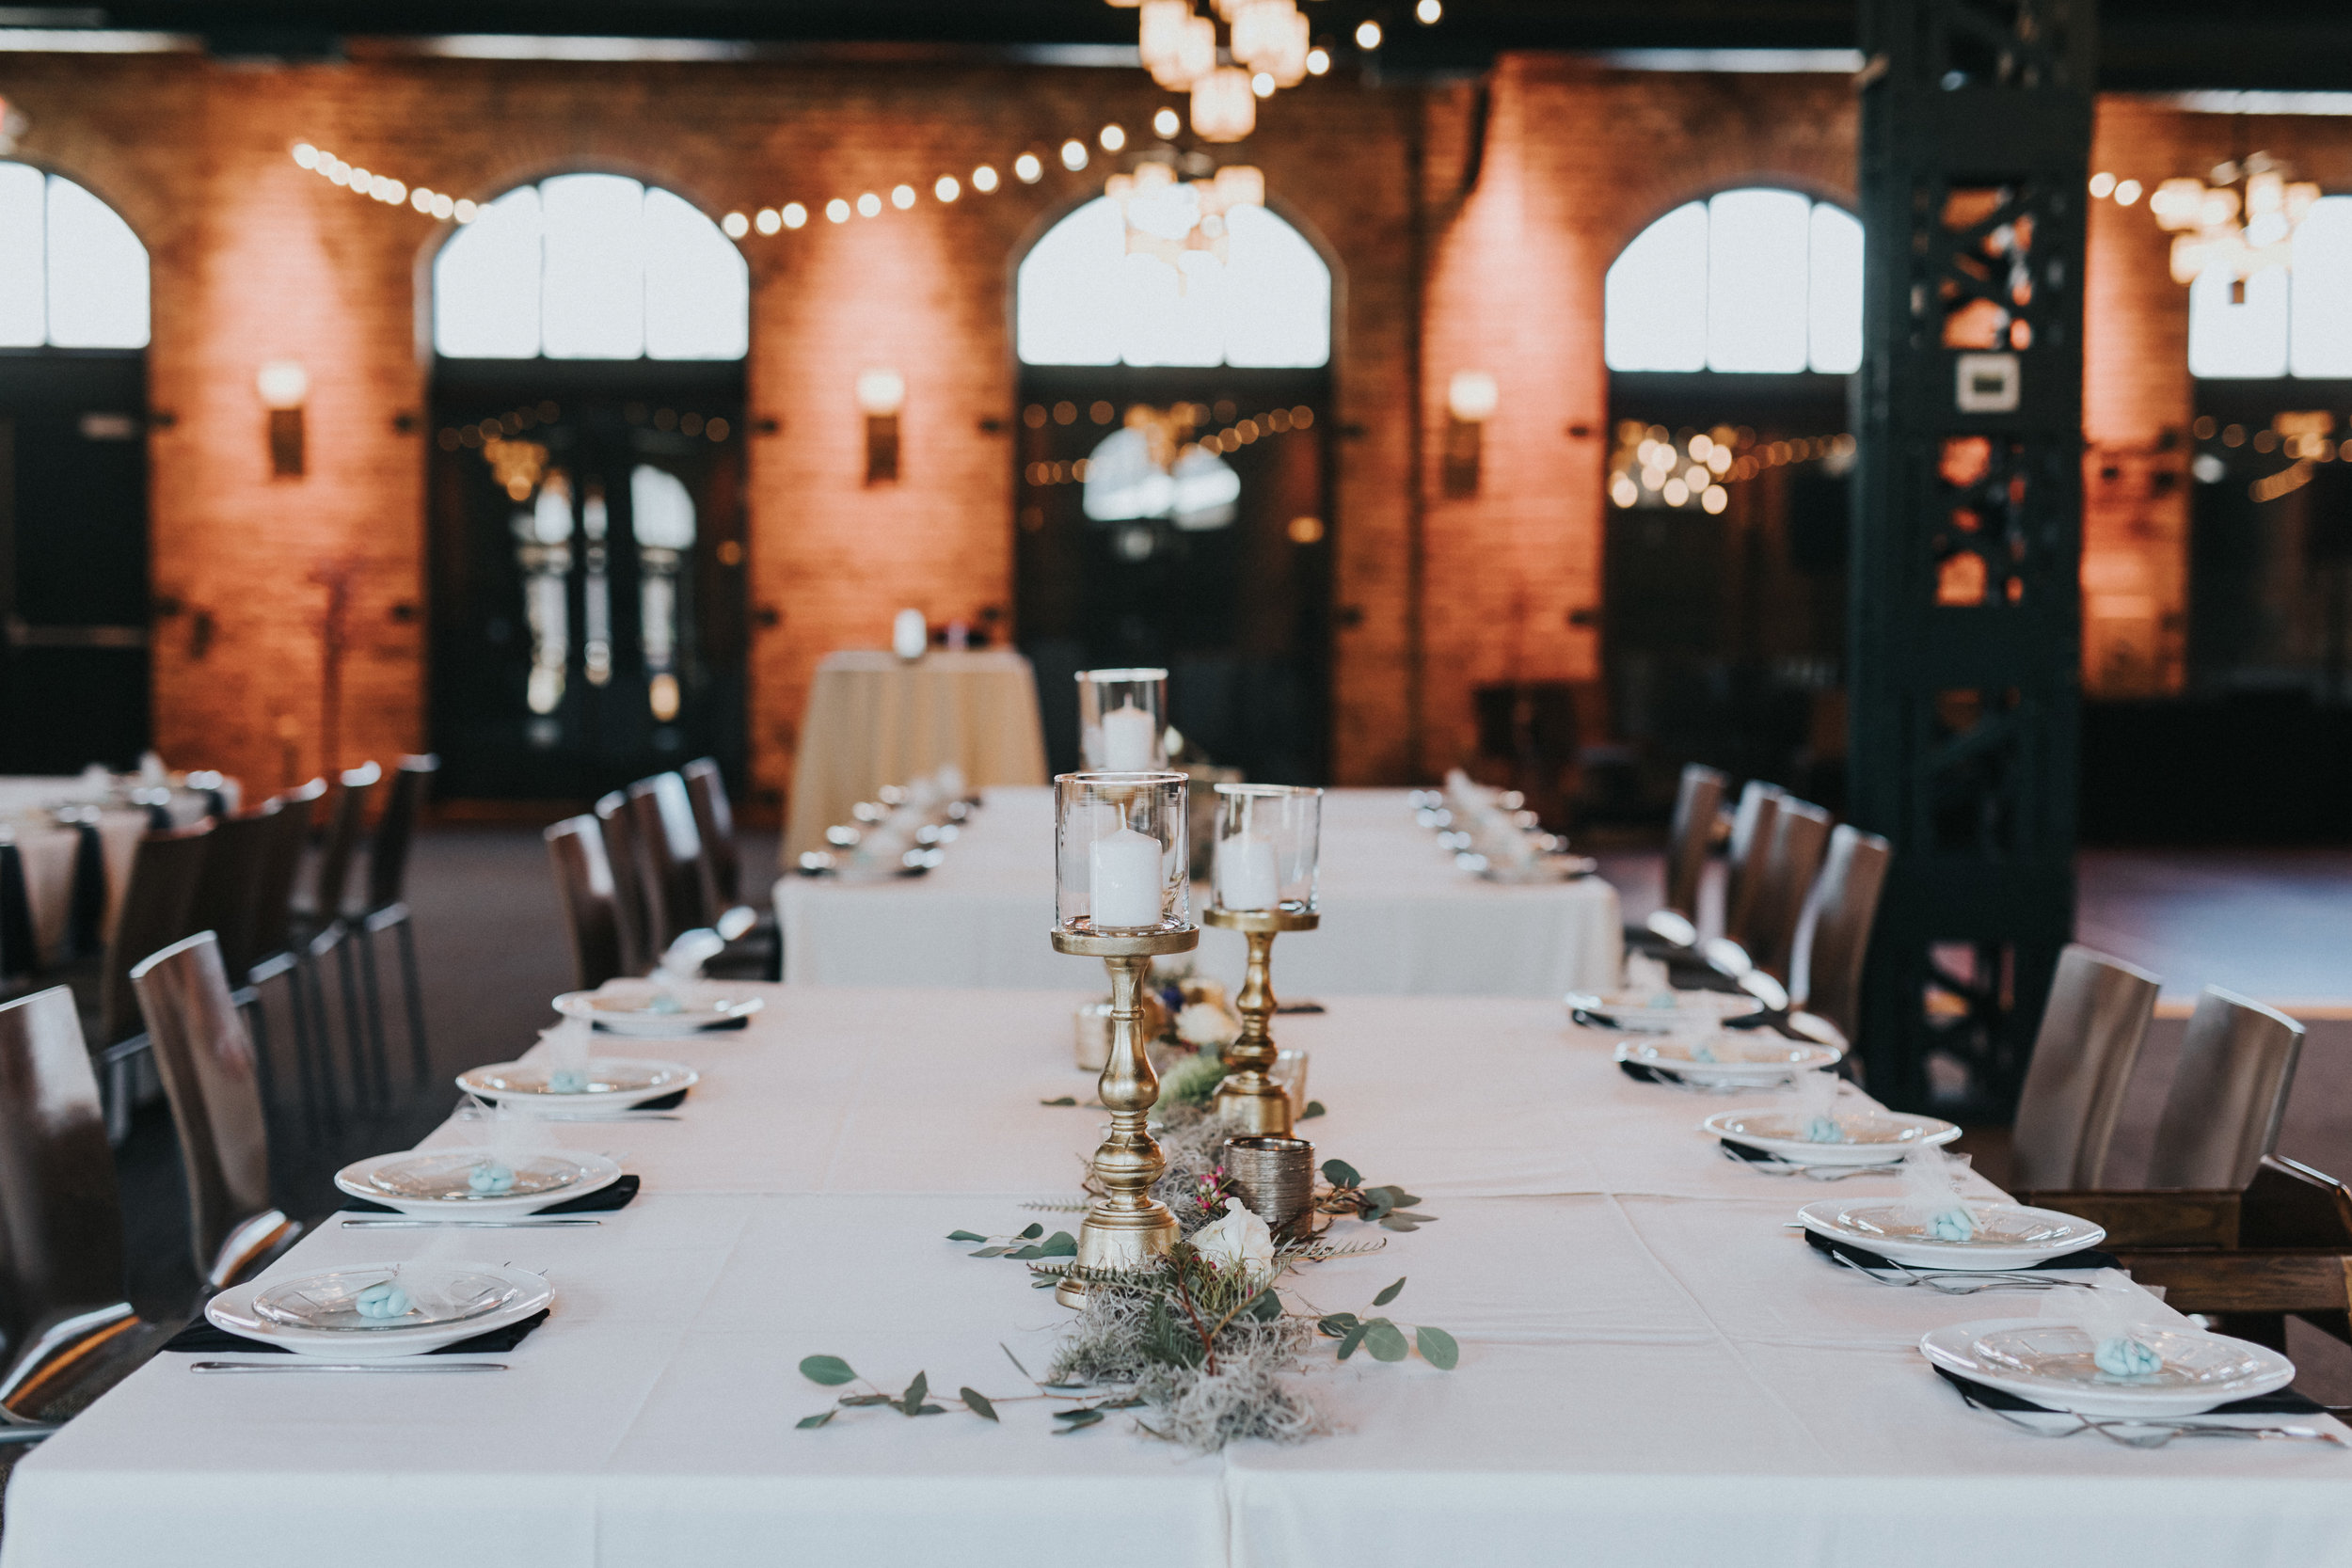 moss table runner, gold pillar candles, blue chocolate almonds guest favors | Russell Heeter Photography :: Minneapolis wedding planner Sixpence Events :: Nicollet Island Pavilion :: april wedding in Minnesota.jpg